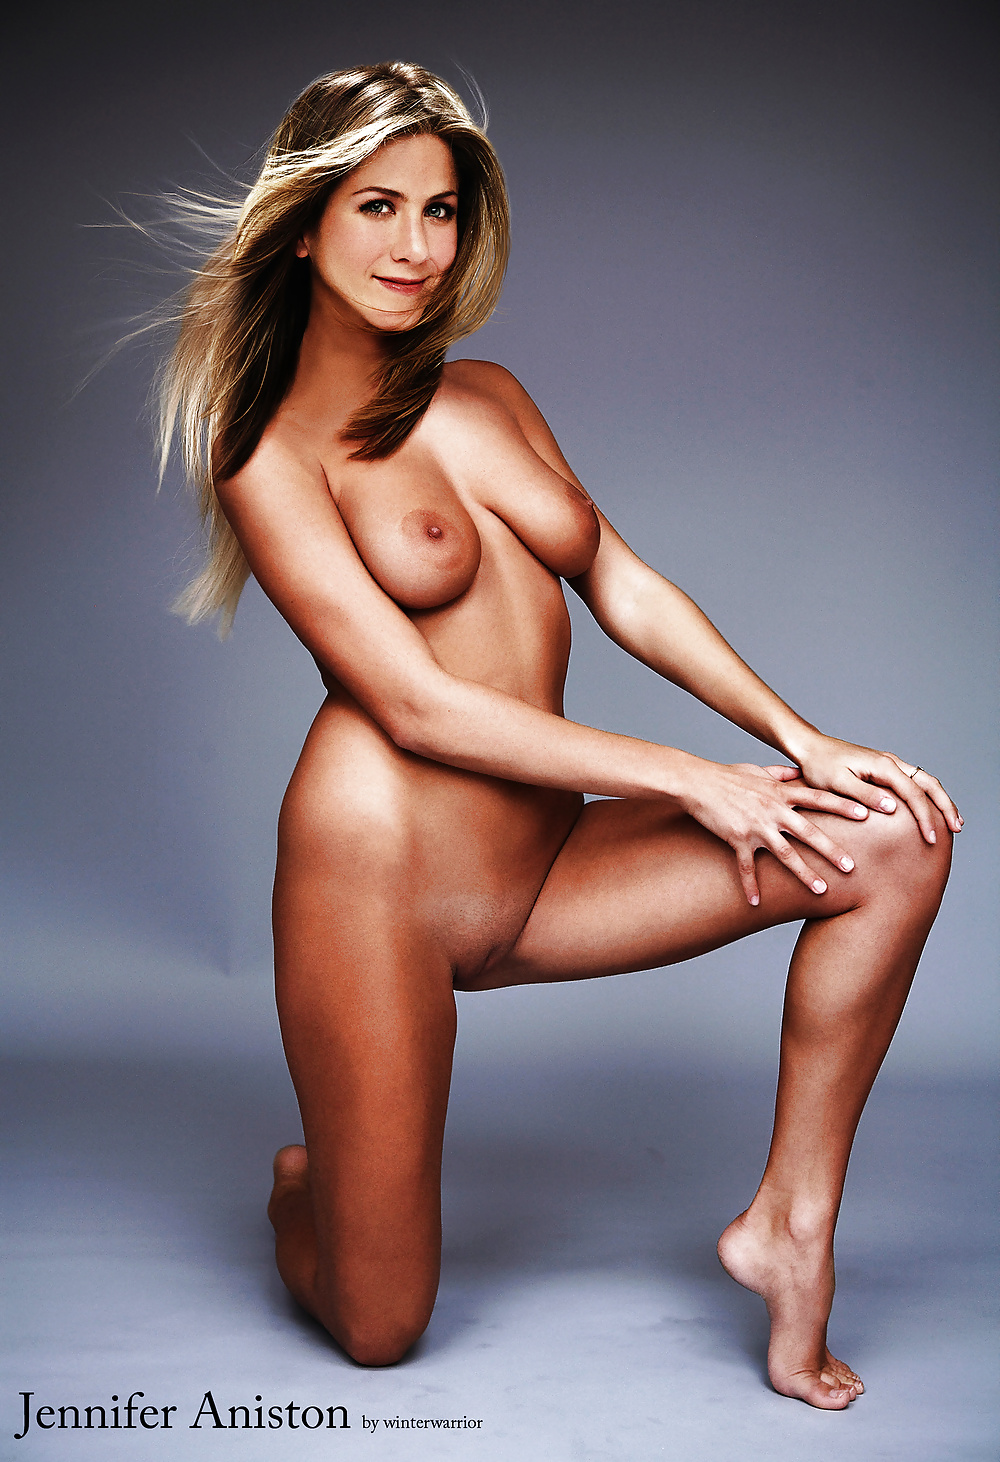 free-jennifer-aniston-nude-photos-nude